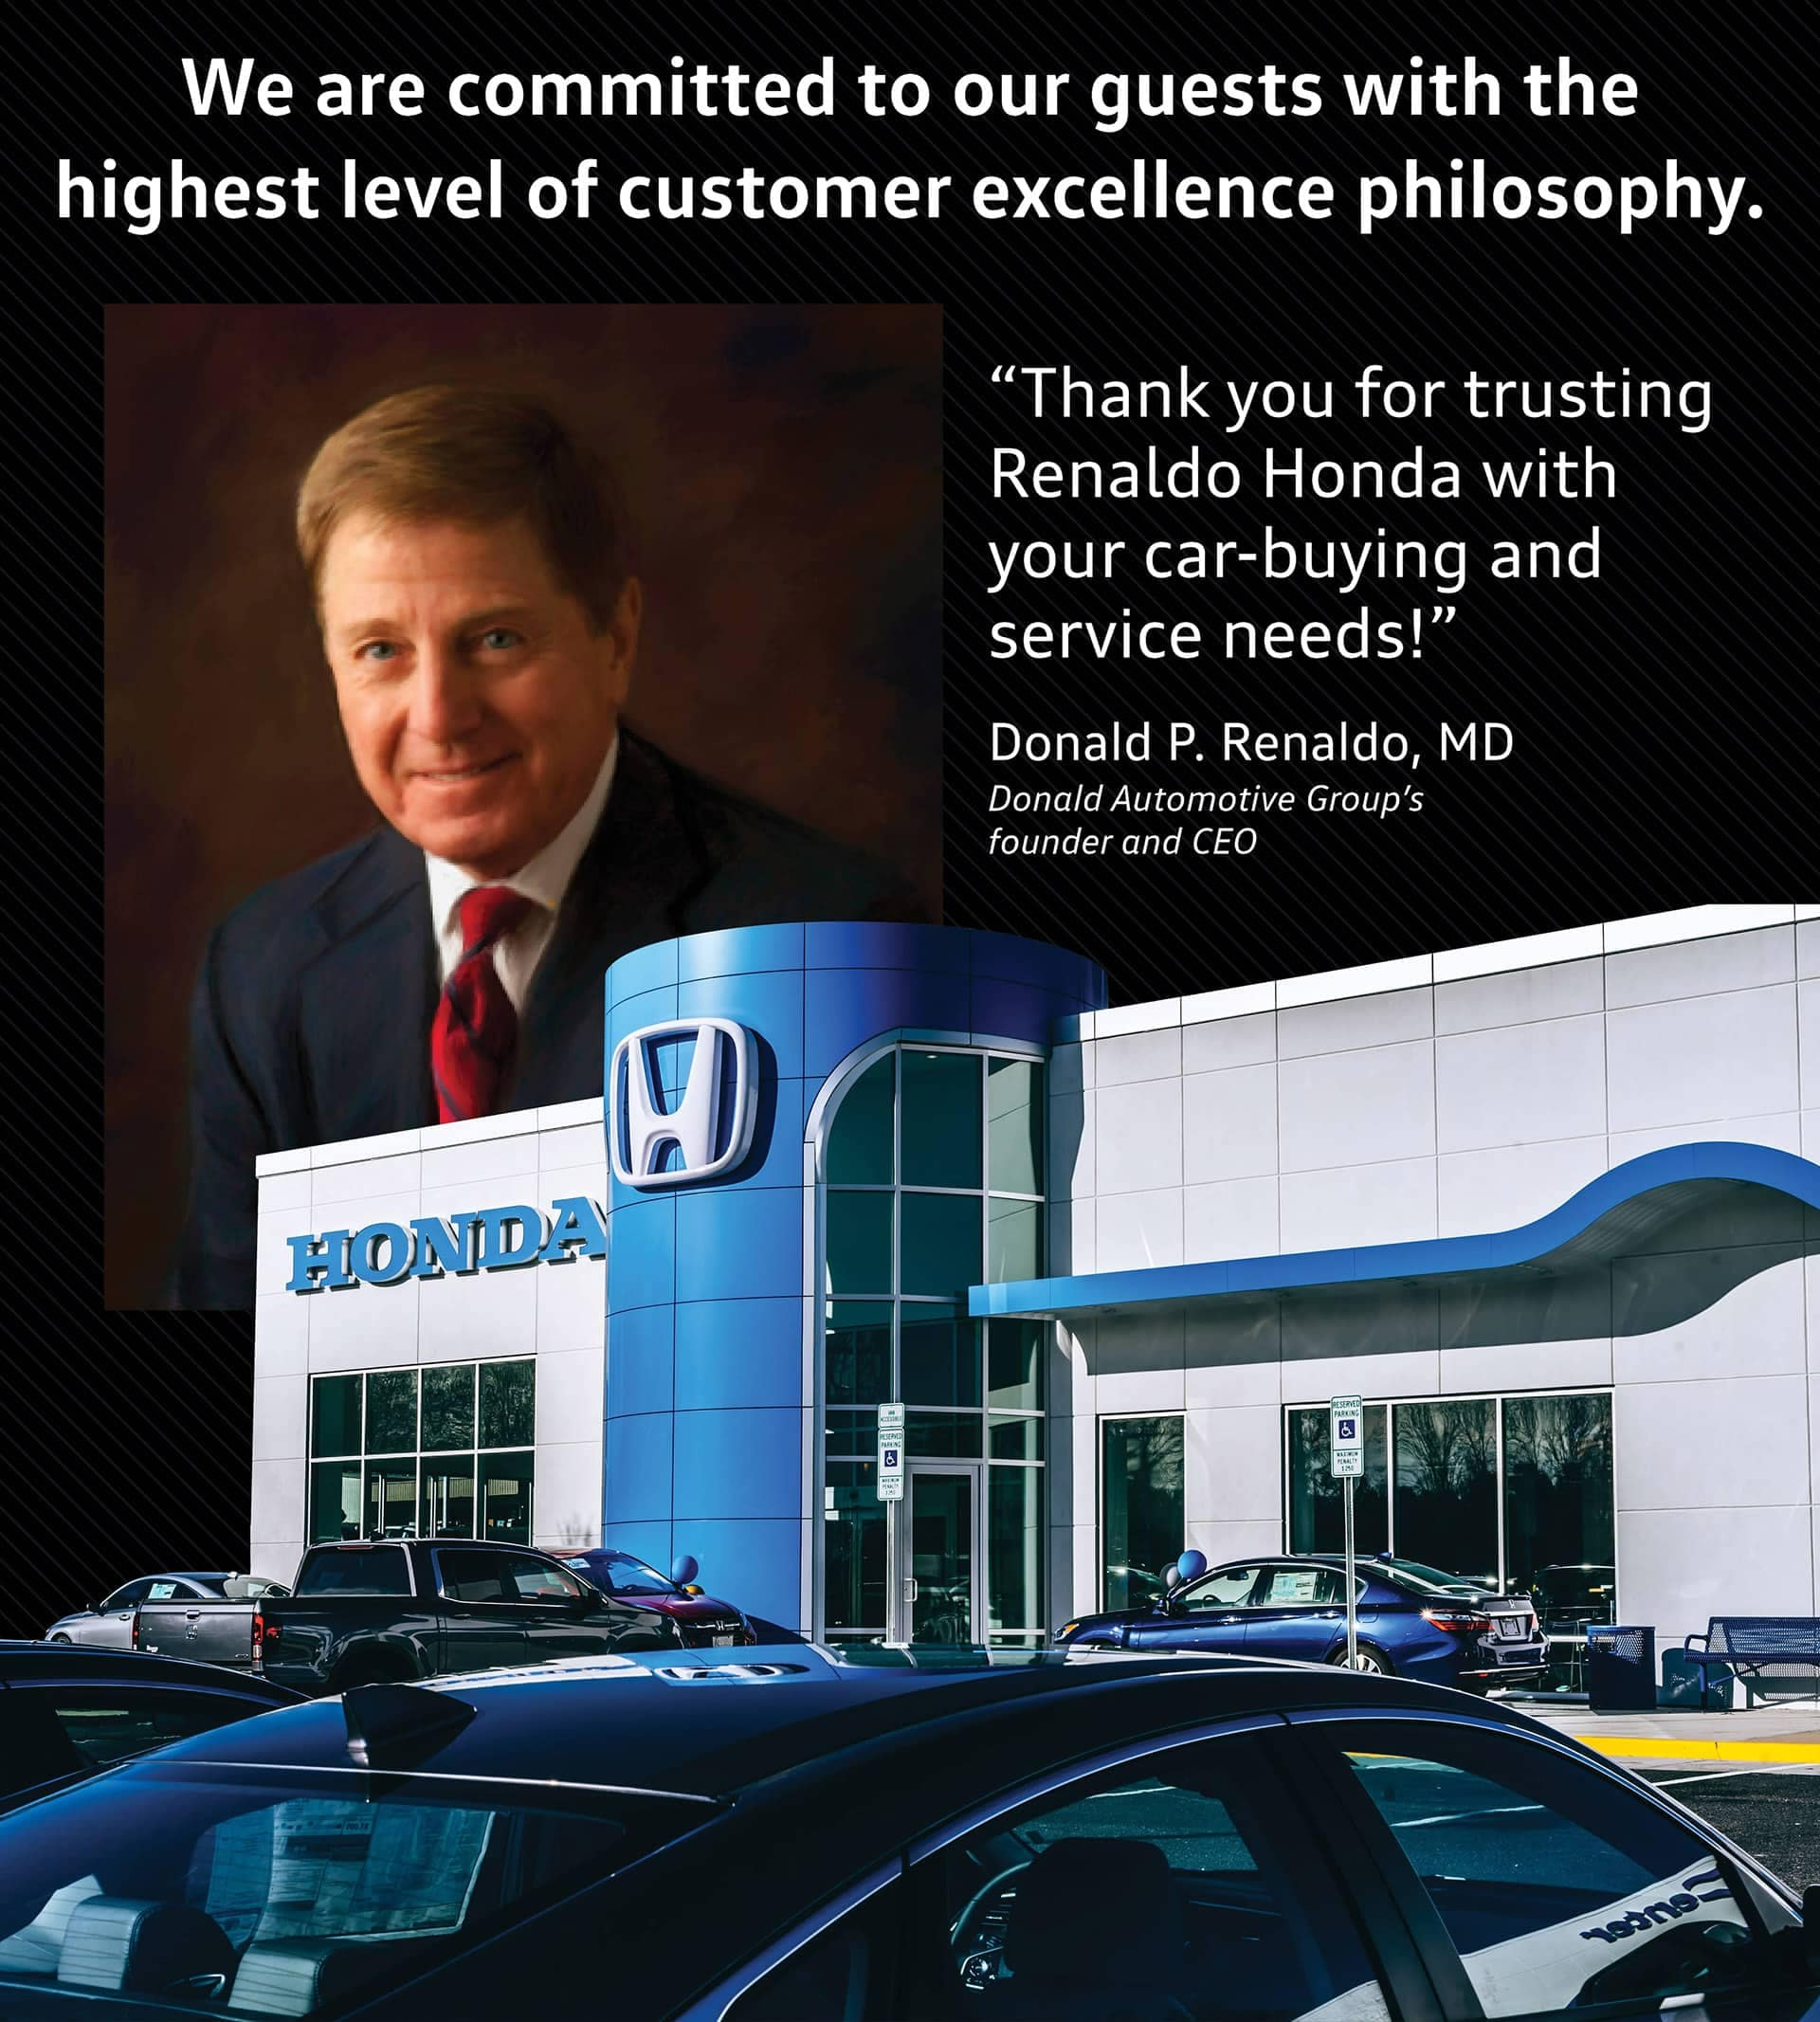 Renaldo Honda is committed to providing our guests with the highest level of excellence